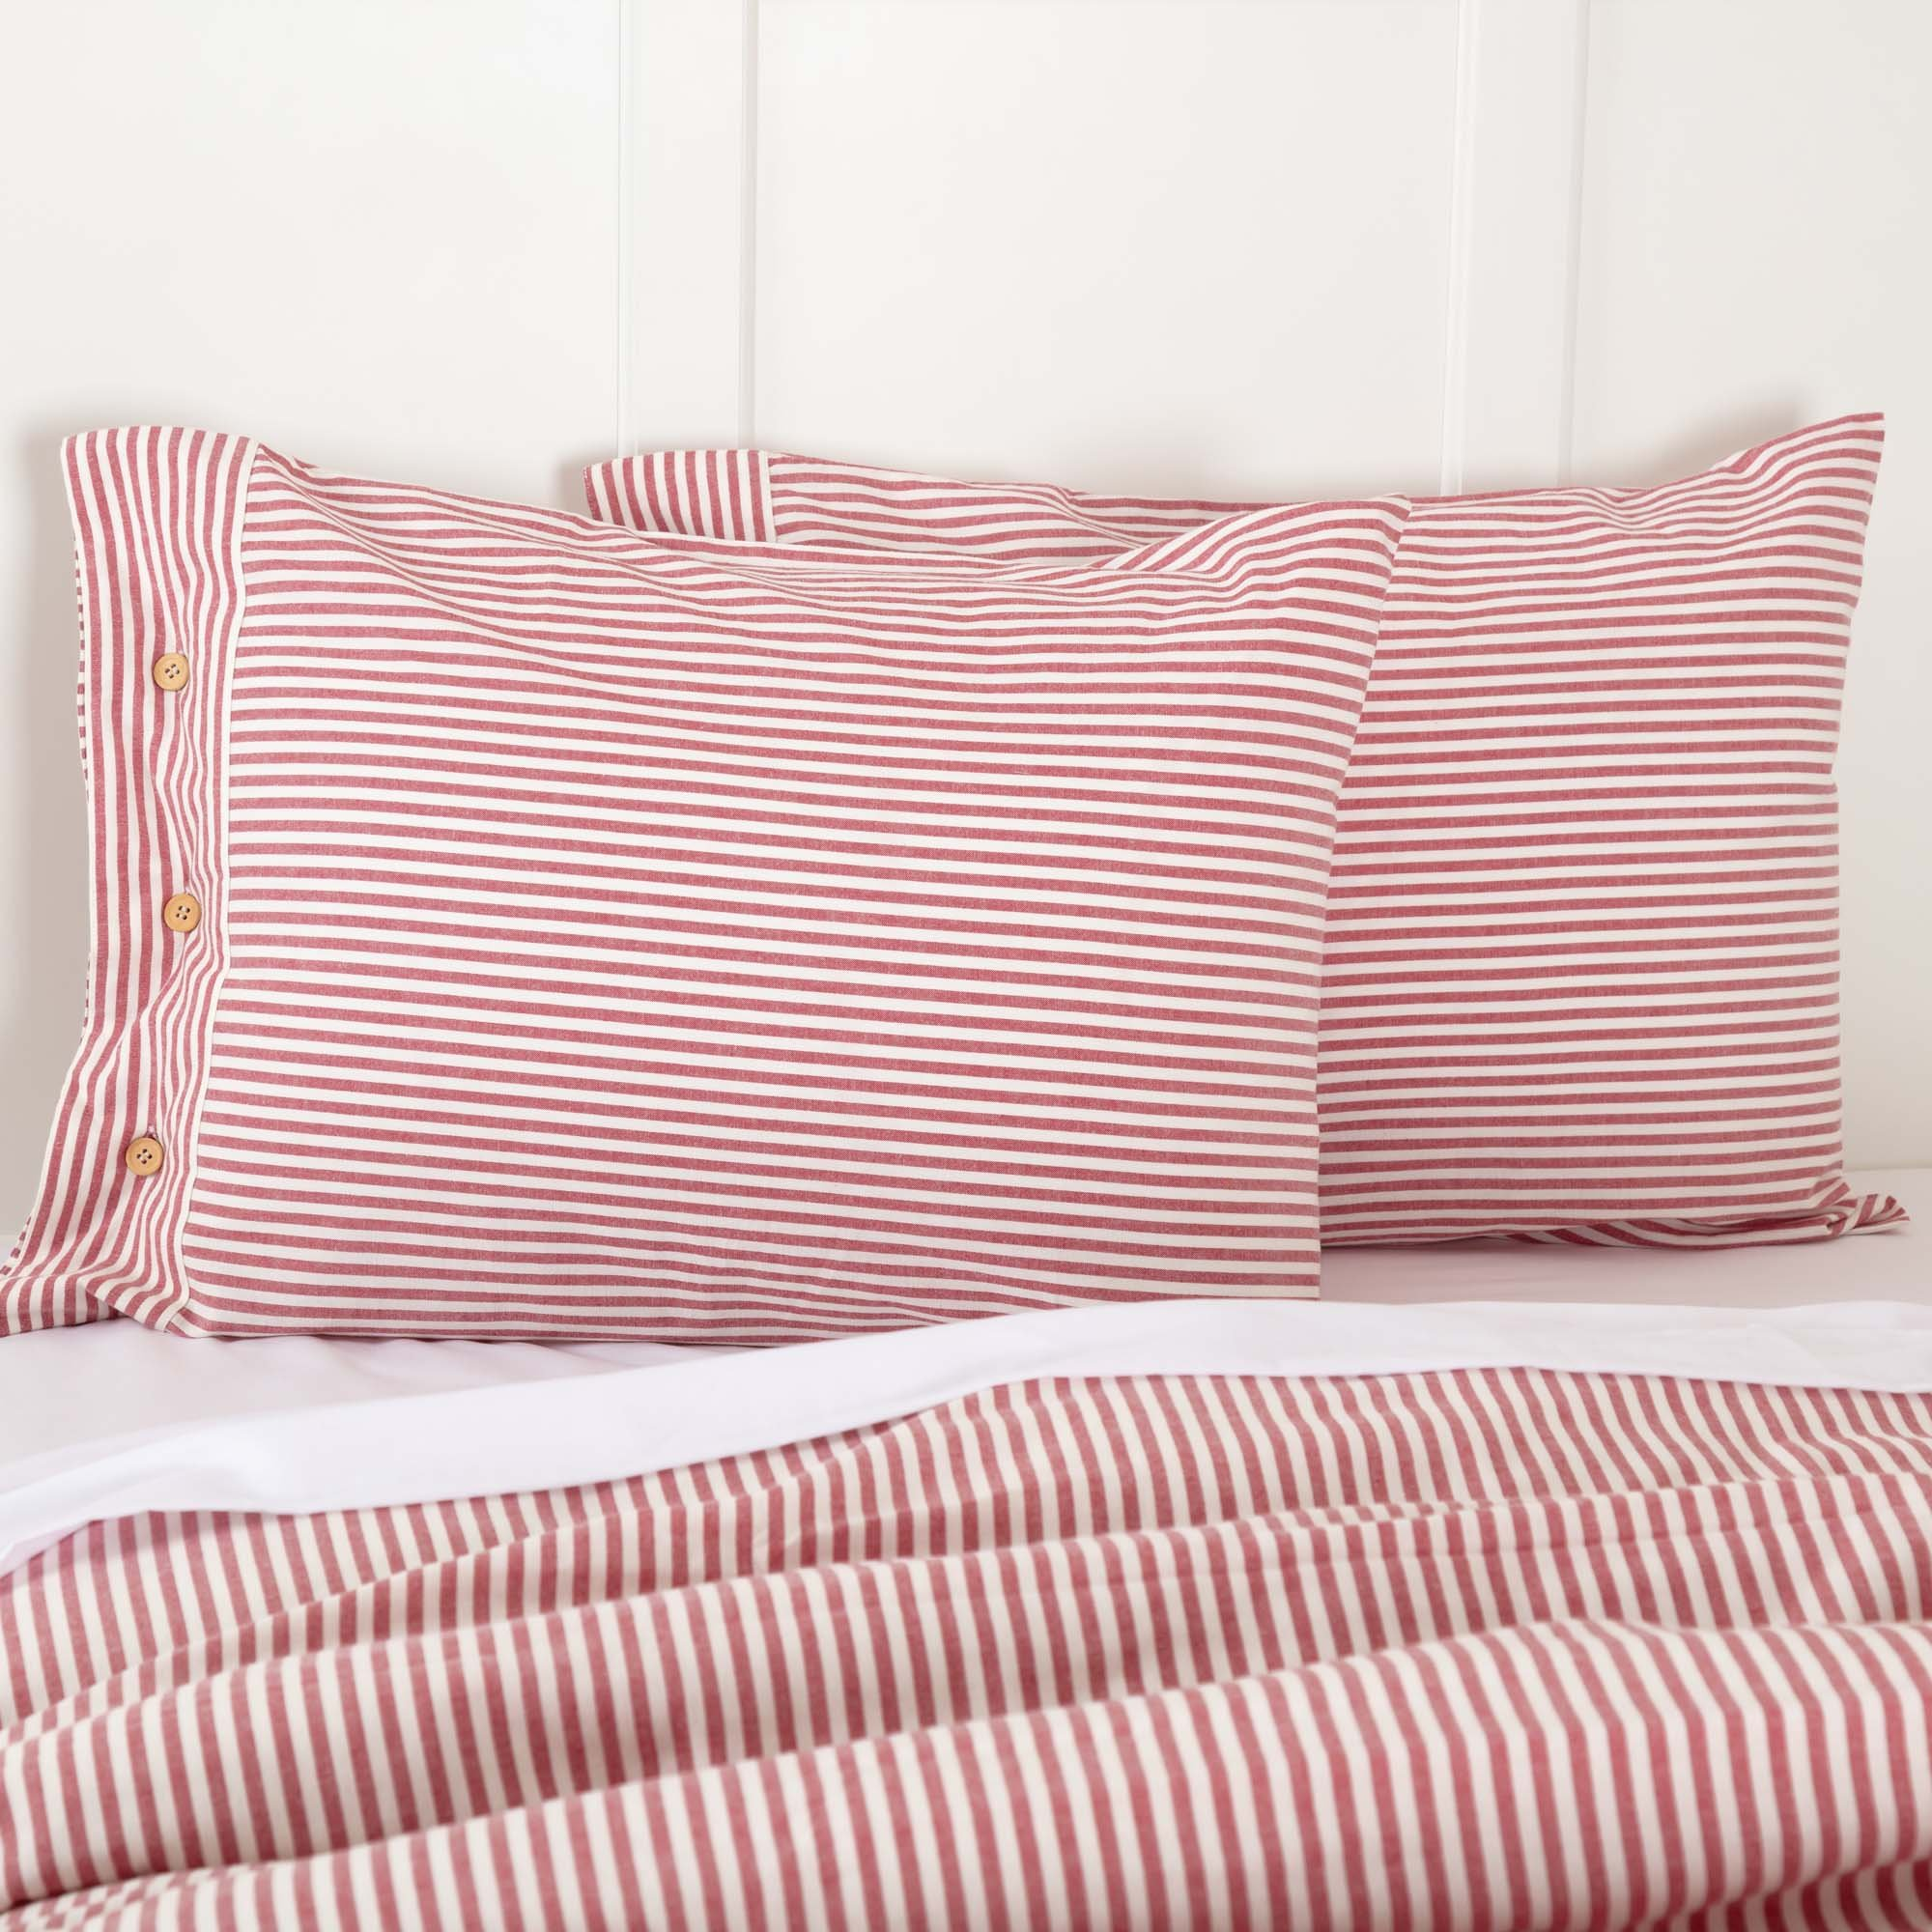 Piper Classics Farmhouse Ticking Stripe Red Standard Sham, 21'' x 27'', Bed Pillow Cover